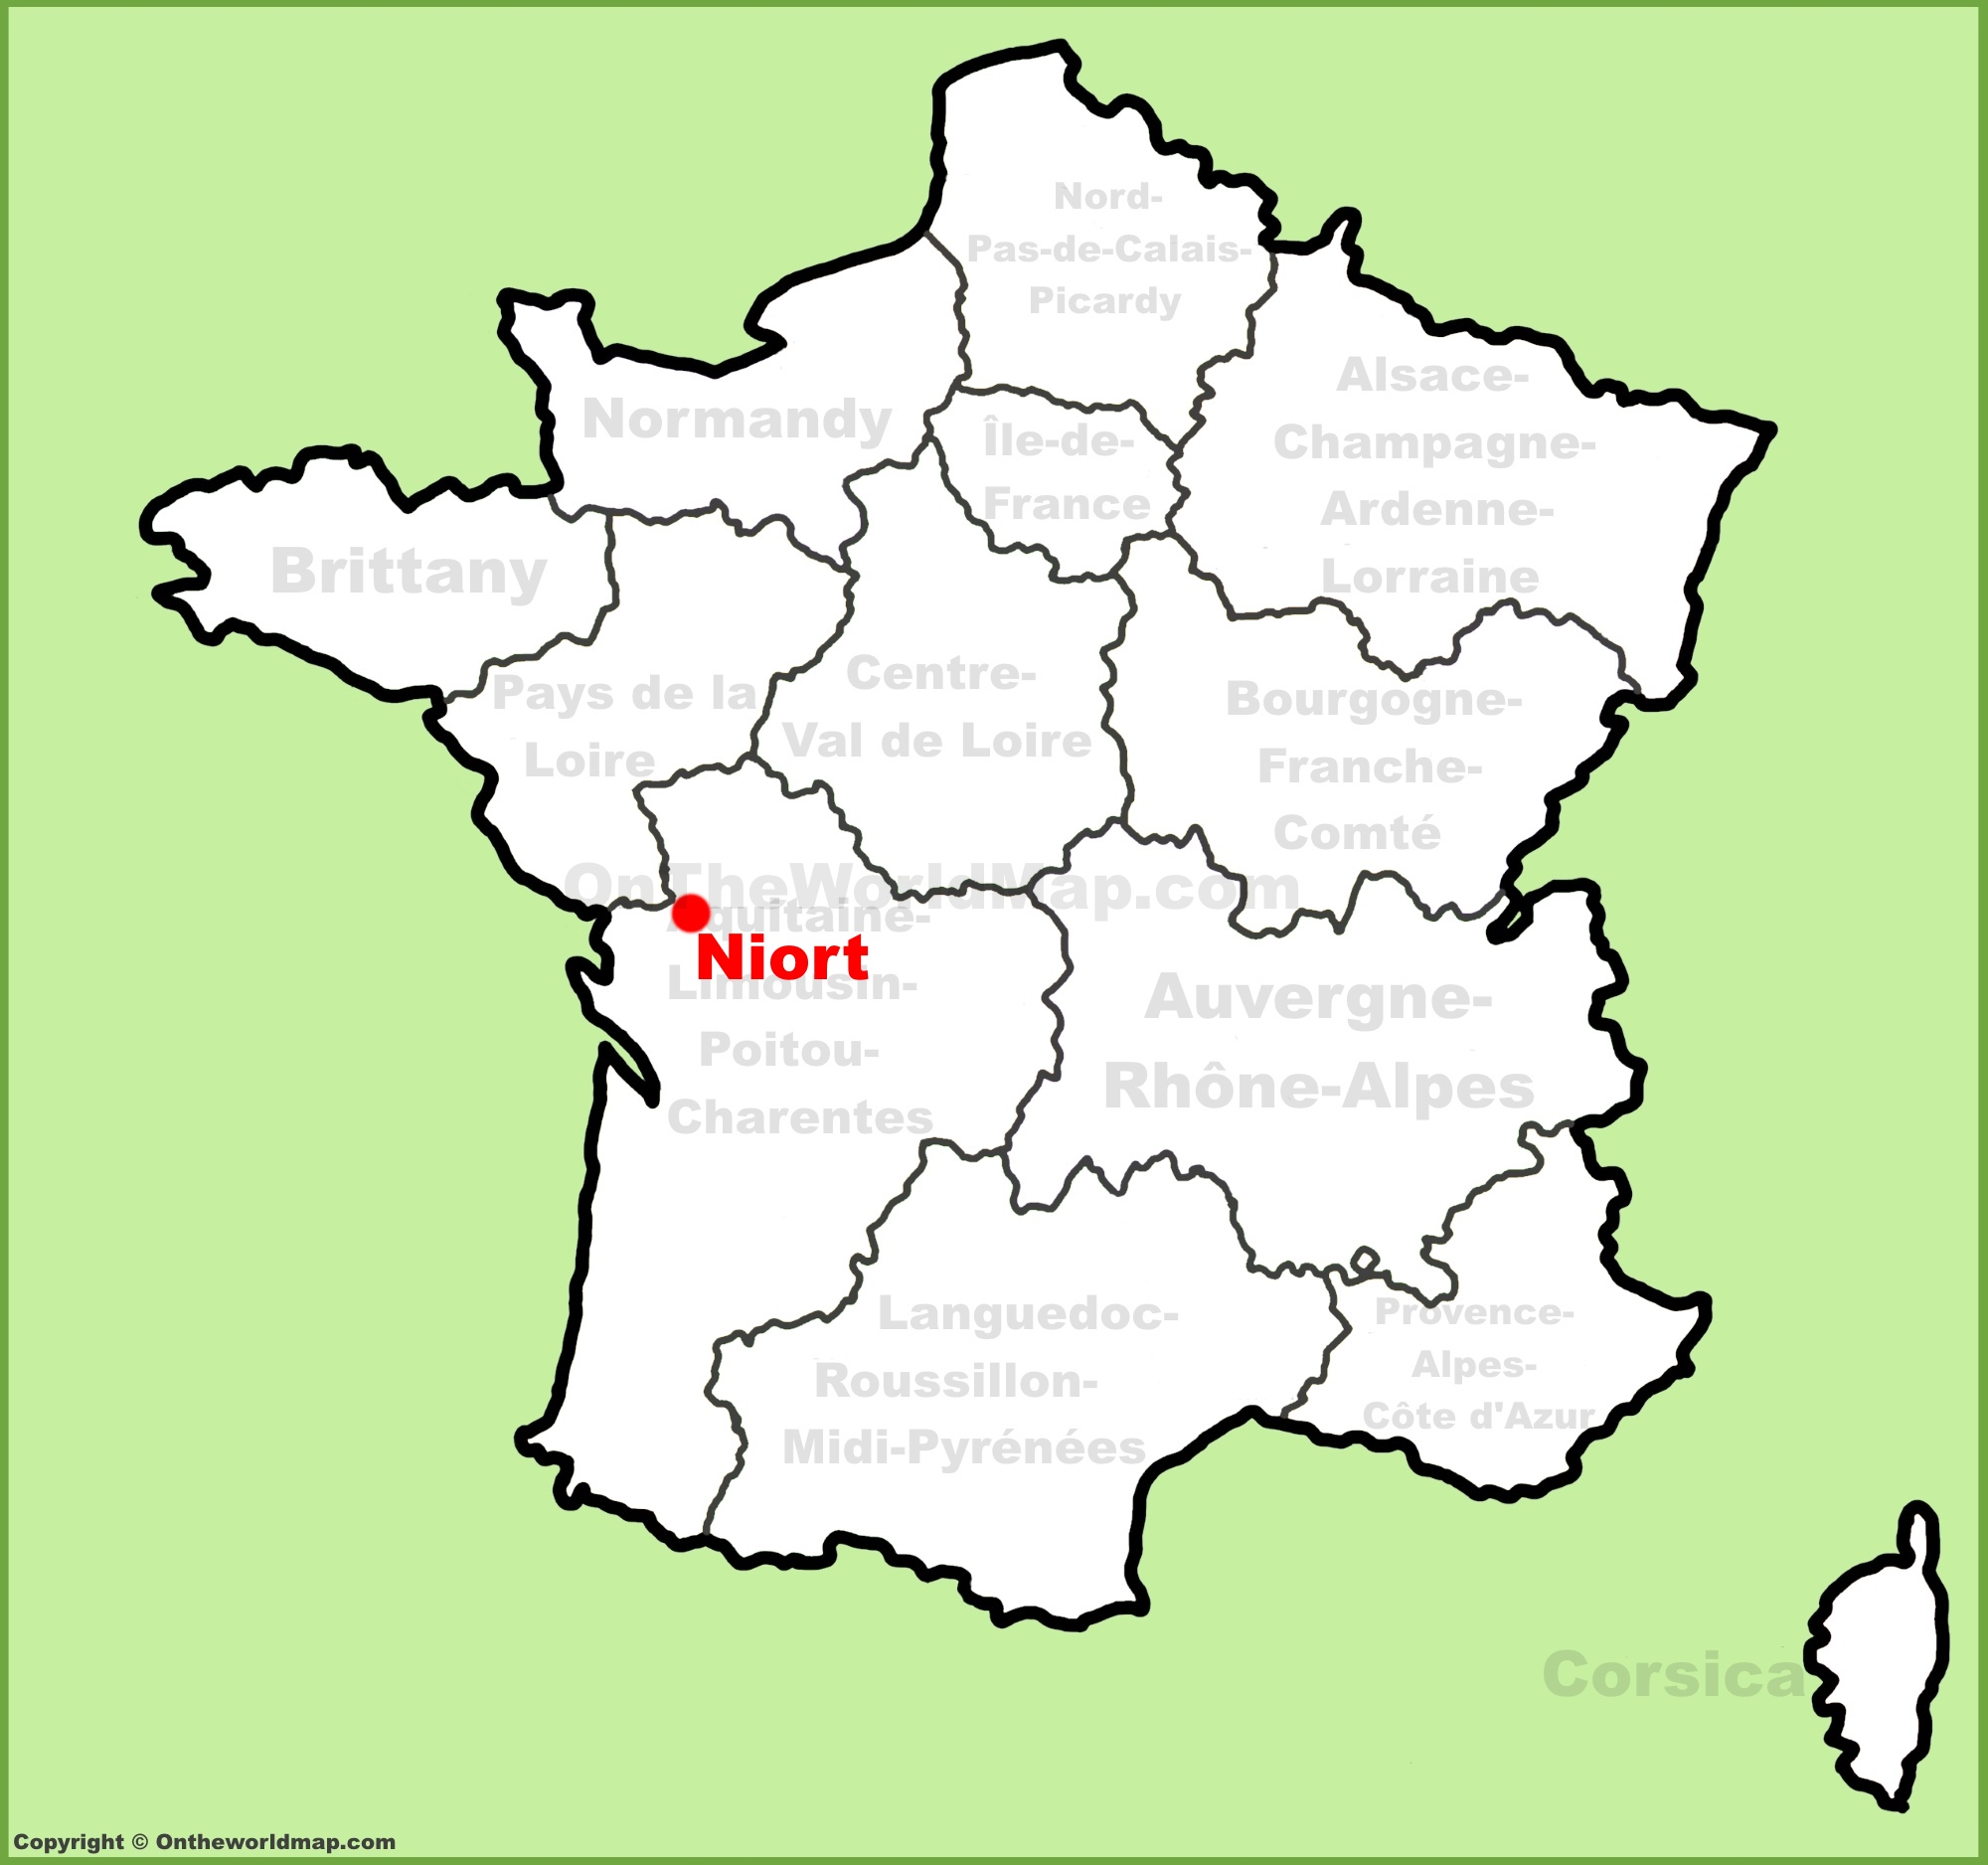 Niort location on the France map